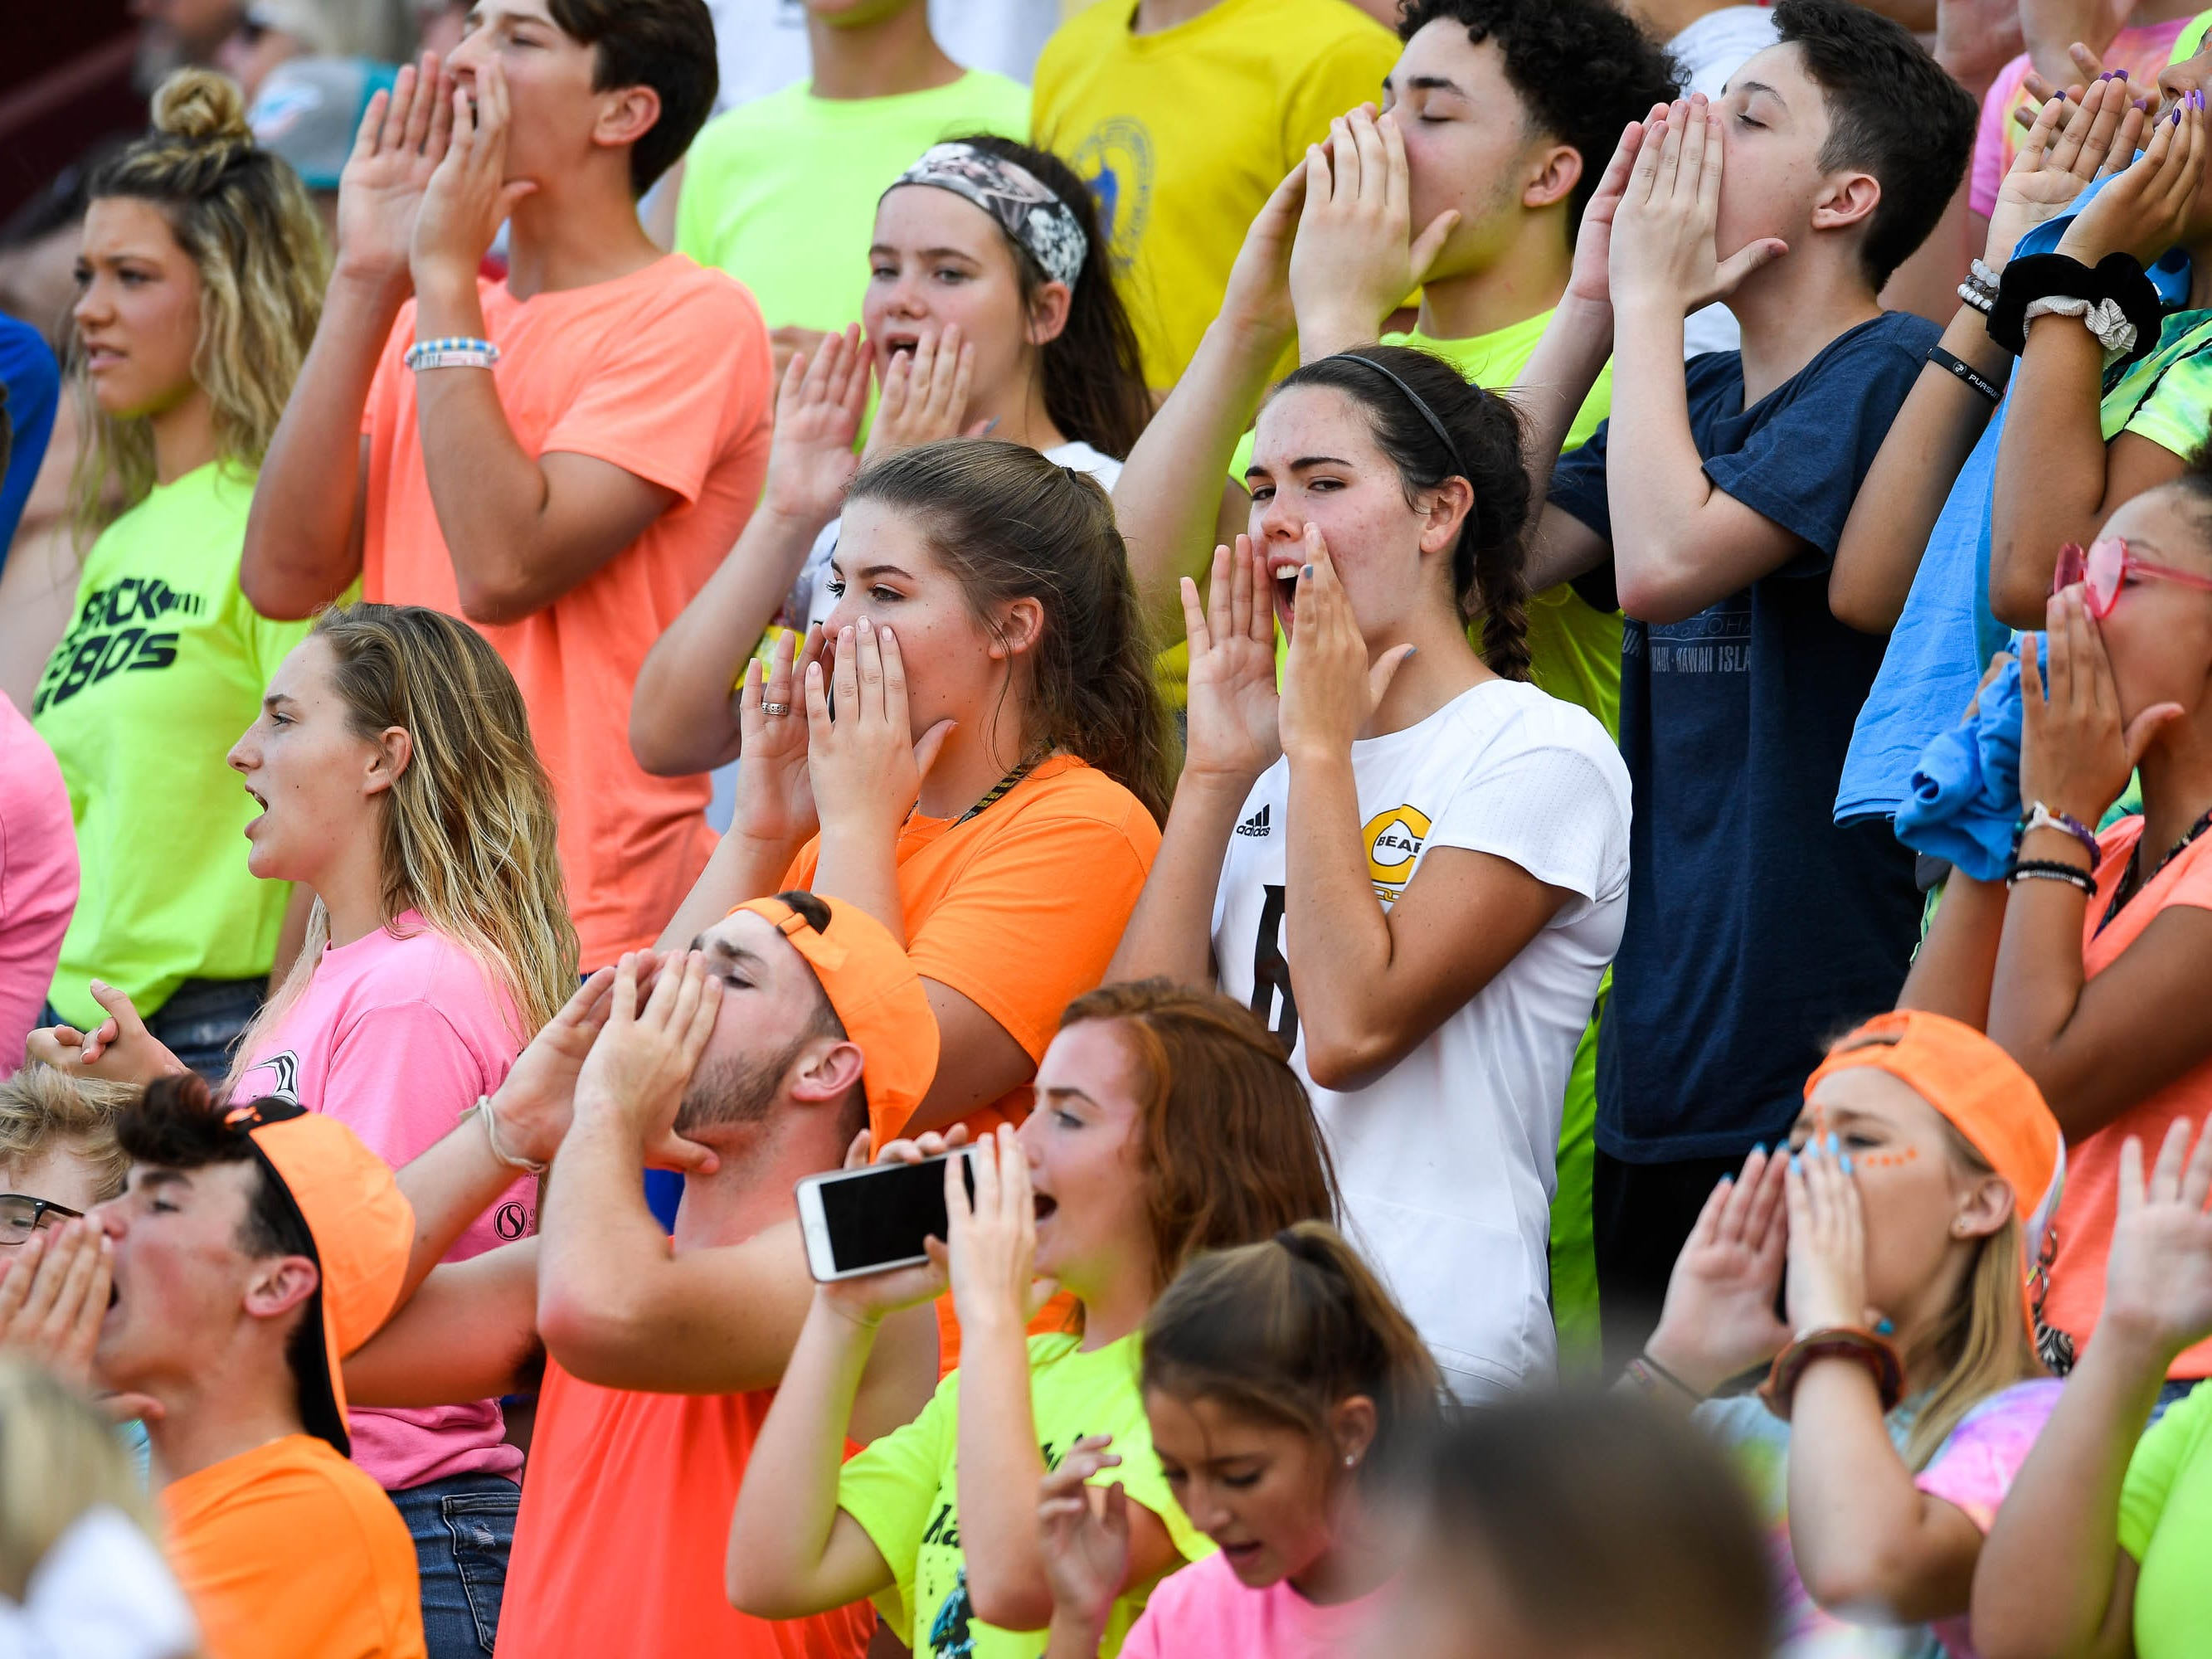 Central student section as the Daviess County Panthers play the Evansville Central Bears at the Border Bowl played at Enlow Field in Evansville Saturday, August 25, 2018.